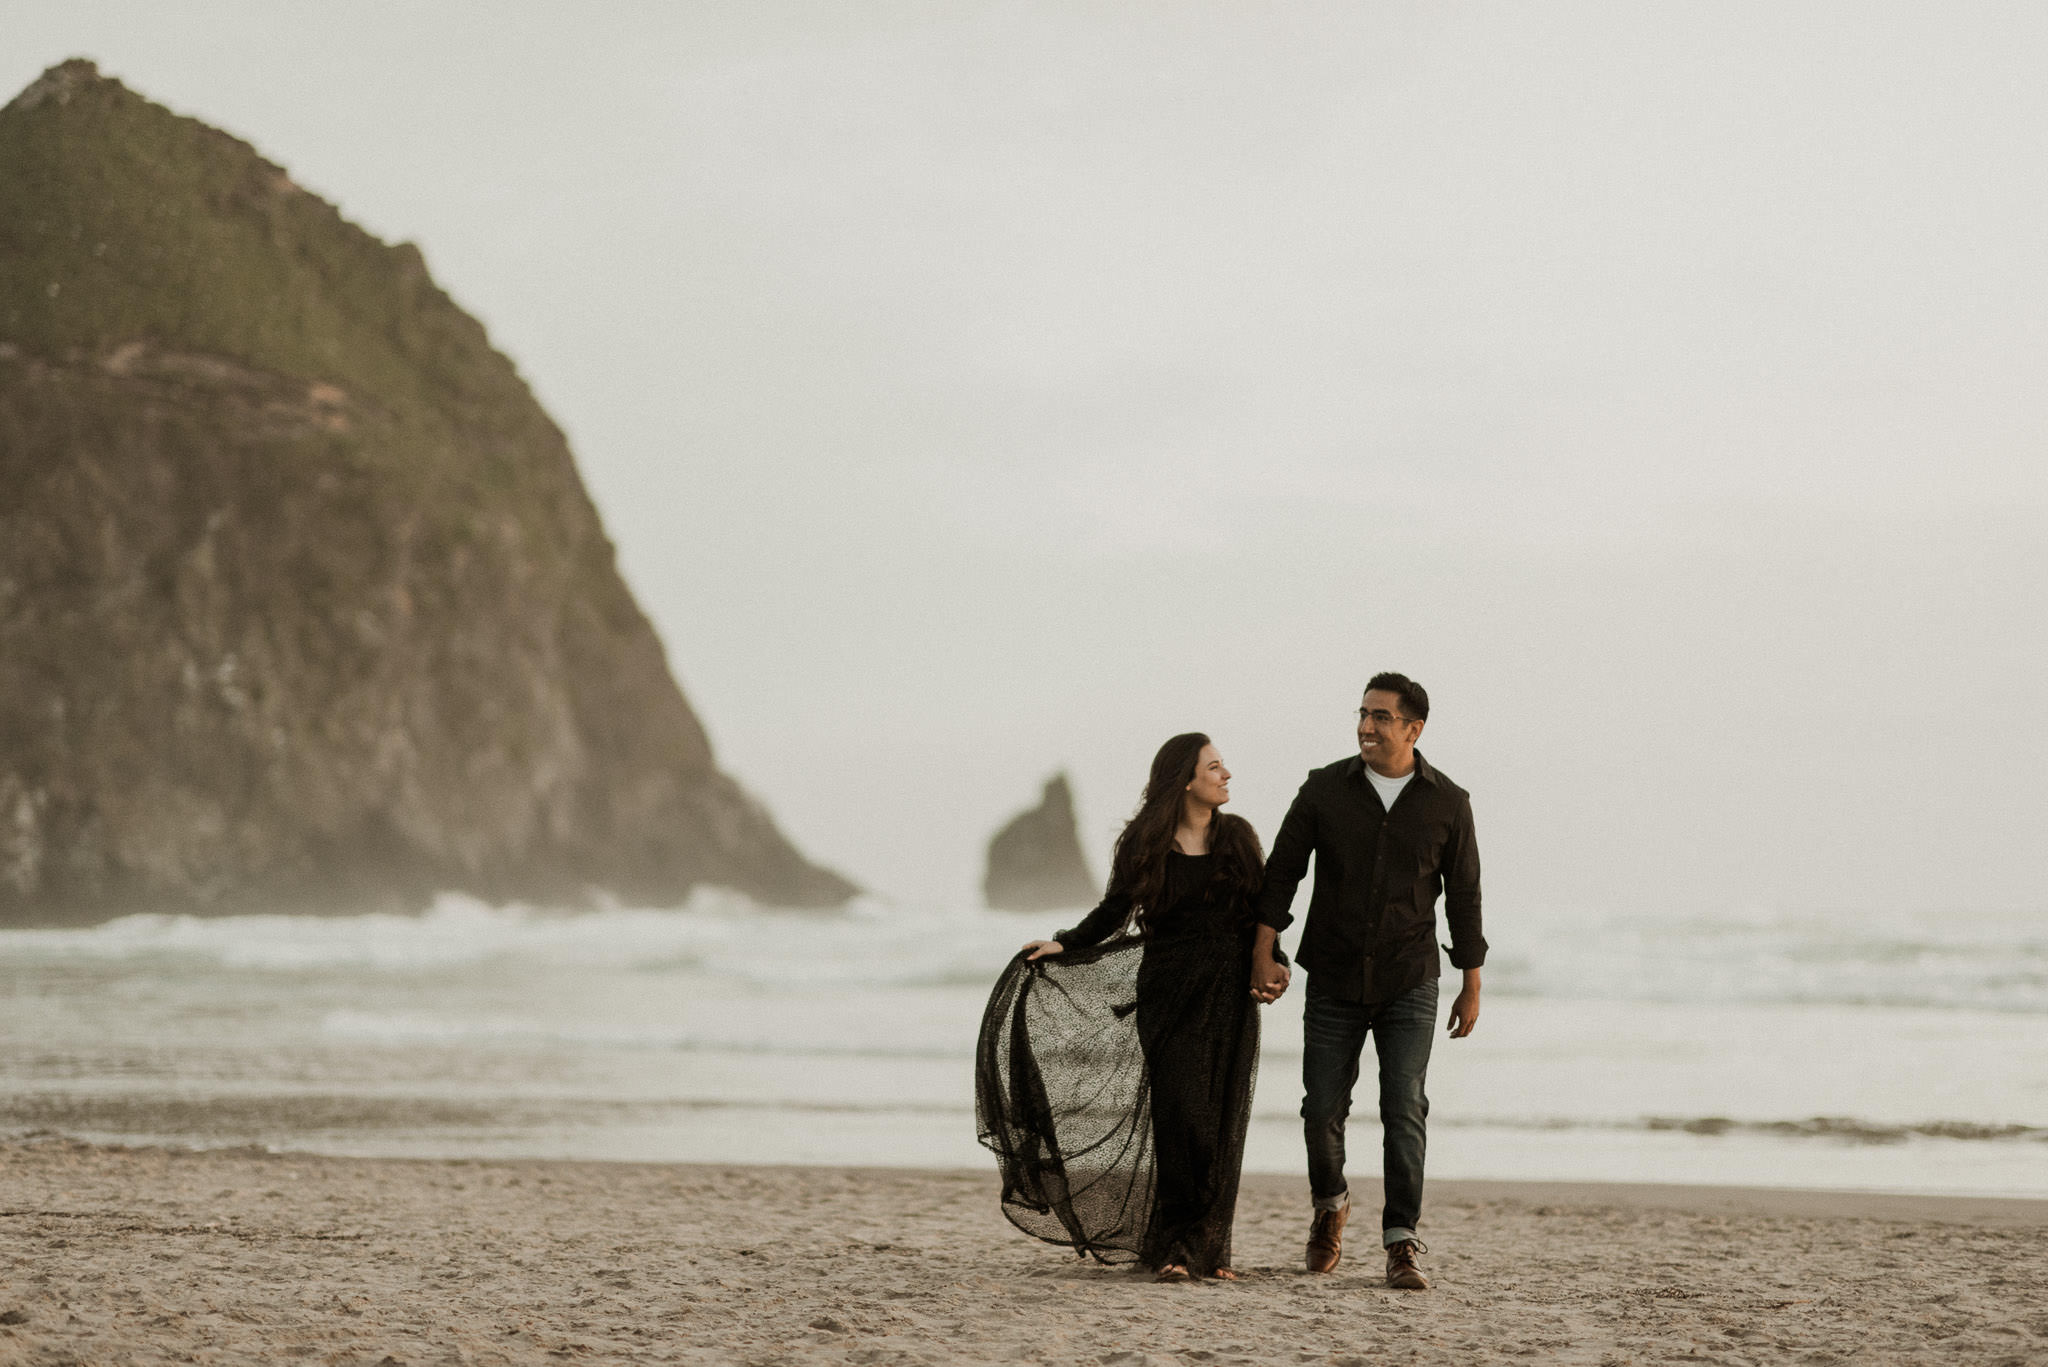 oregon-cannon-beach-ecola-state-park-adventure-destination-engagement-houston-photographer-haystack-rock